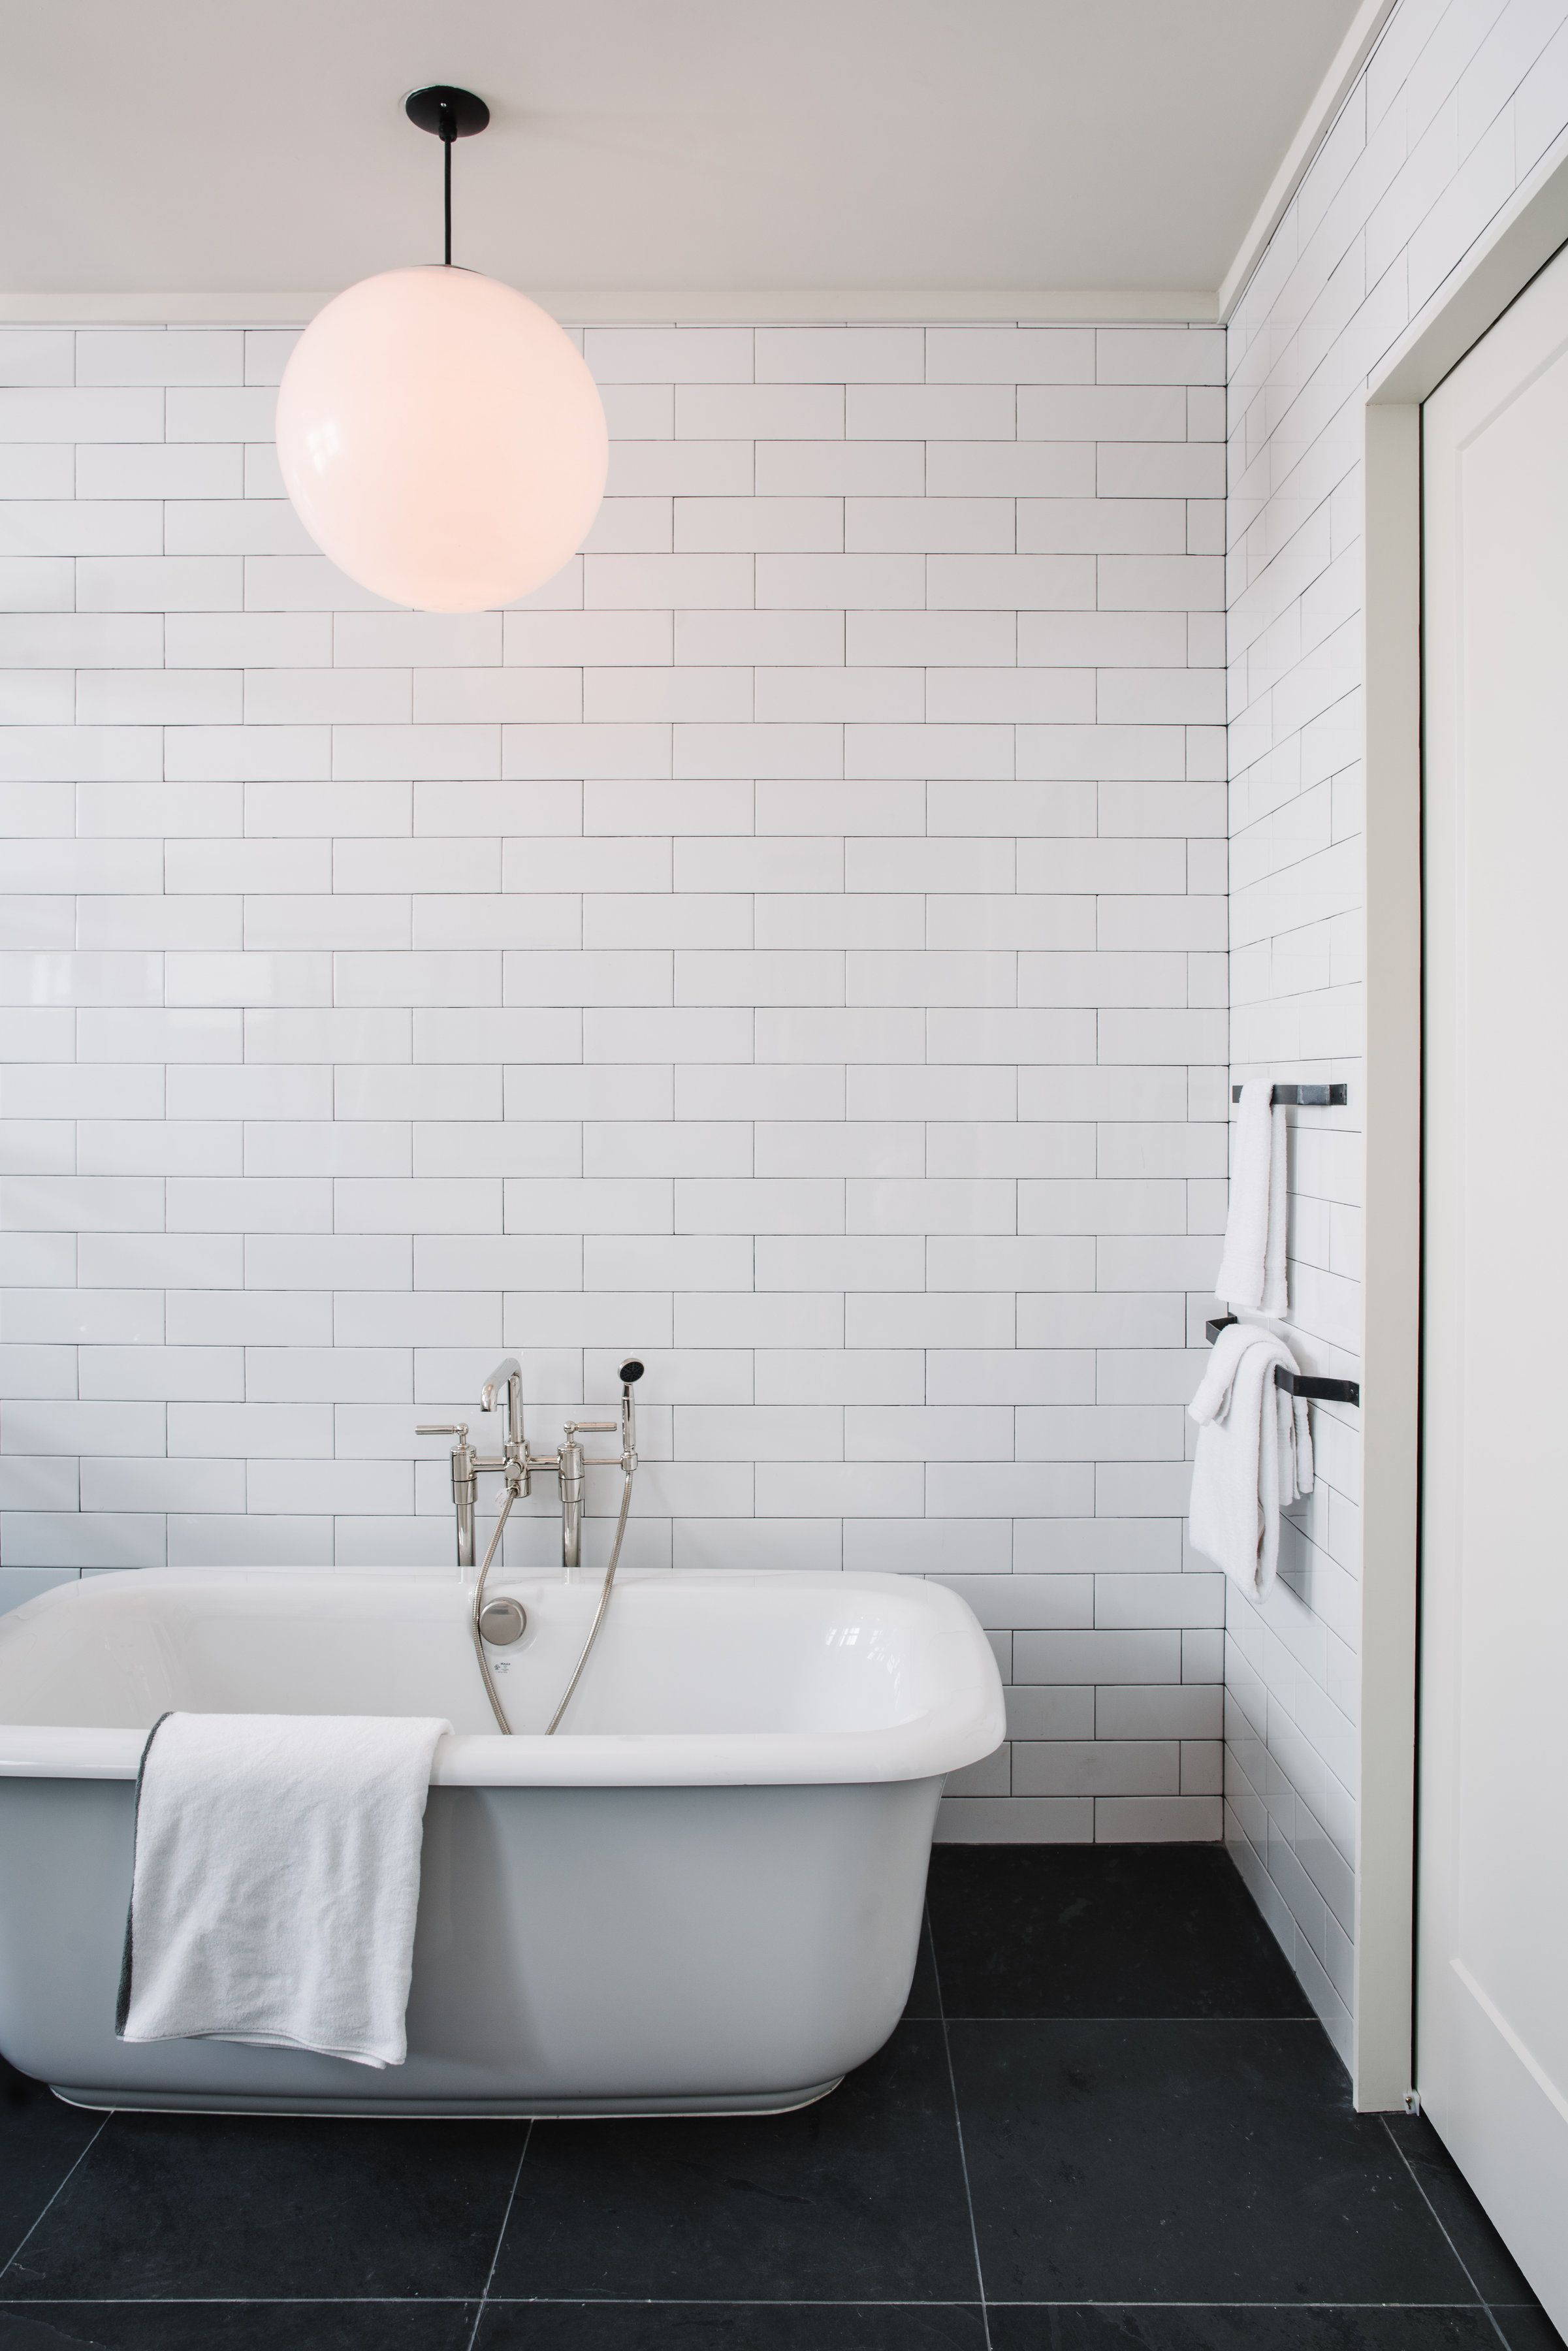 Simplistic minimalistic bathroom design with white subway tiled ...